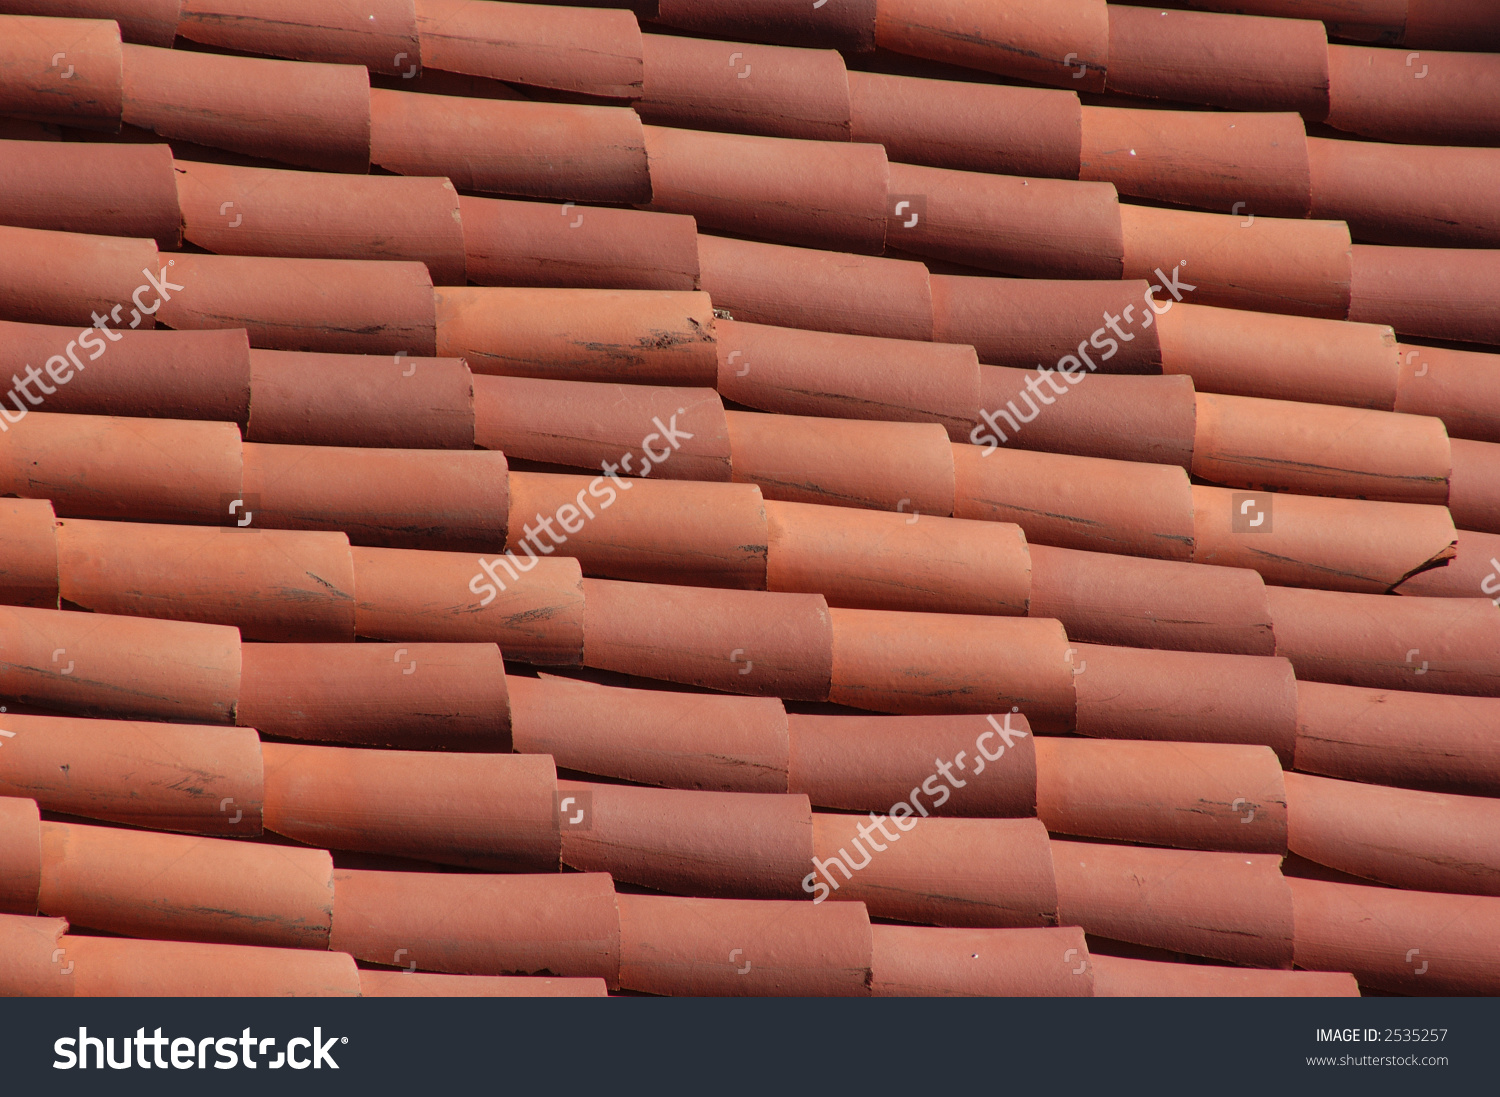 Red Adobe Roof Tile Stock Photo 2535257 Shutterstock